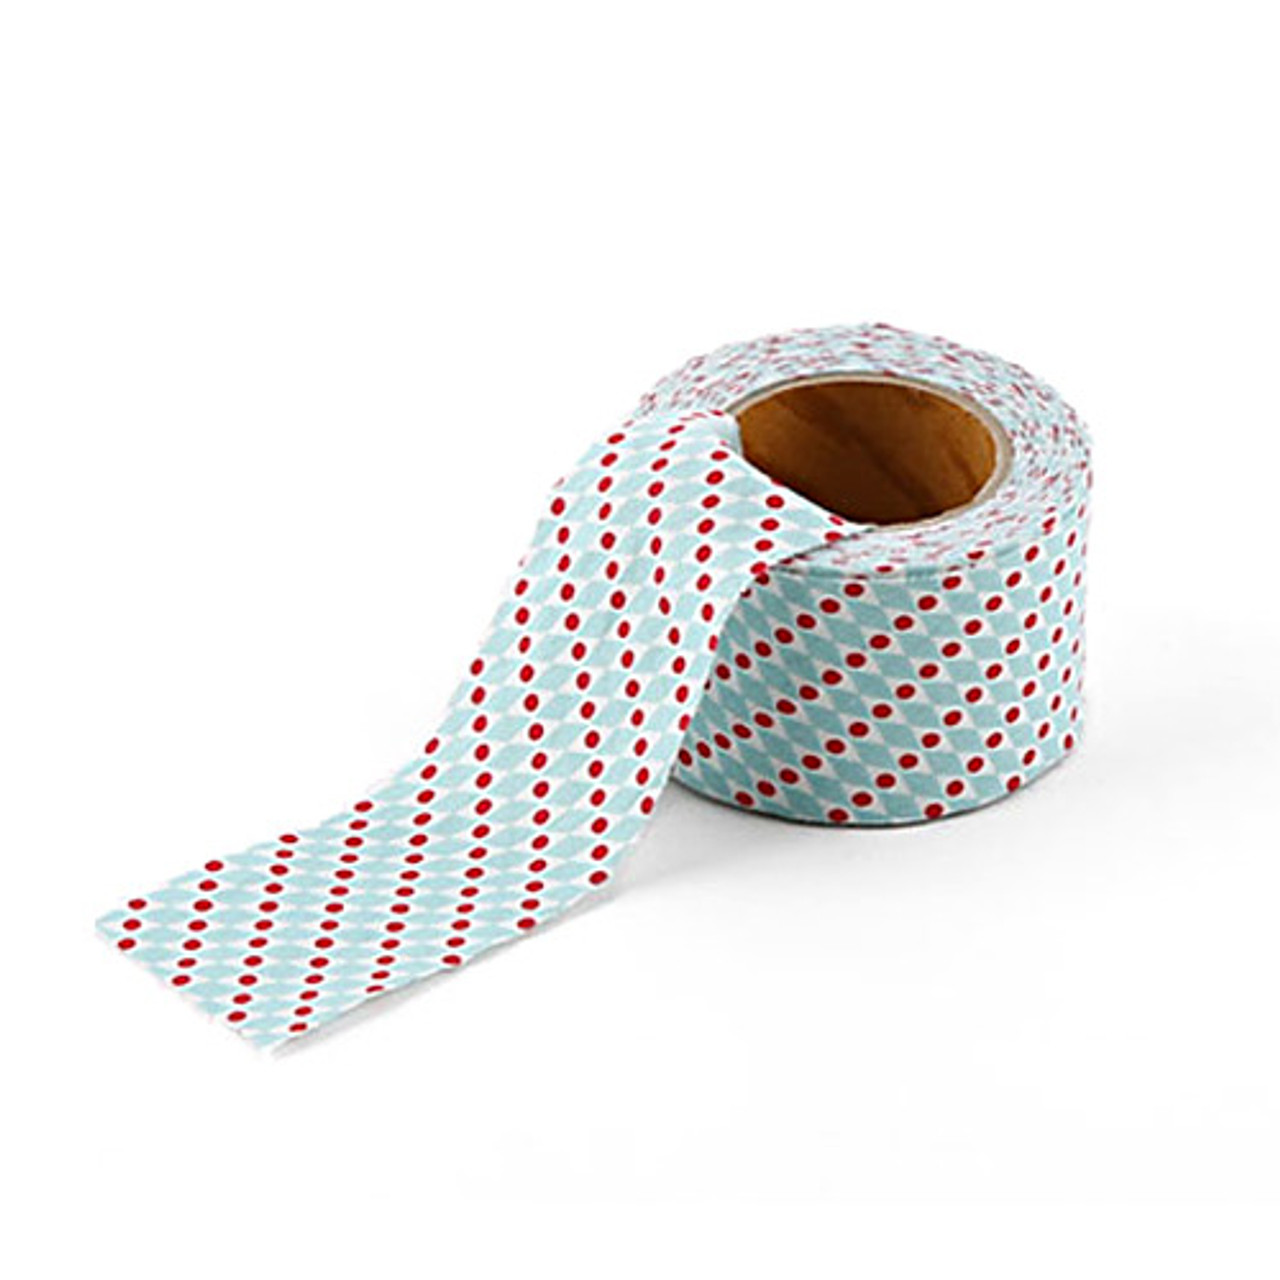 Dailylike Fabric Bias Tape Daily Christmas 2 Sewing